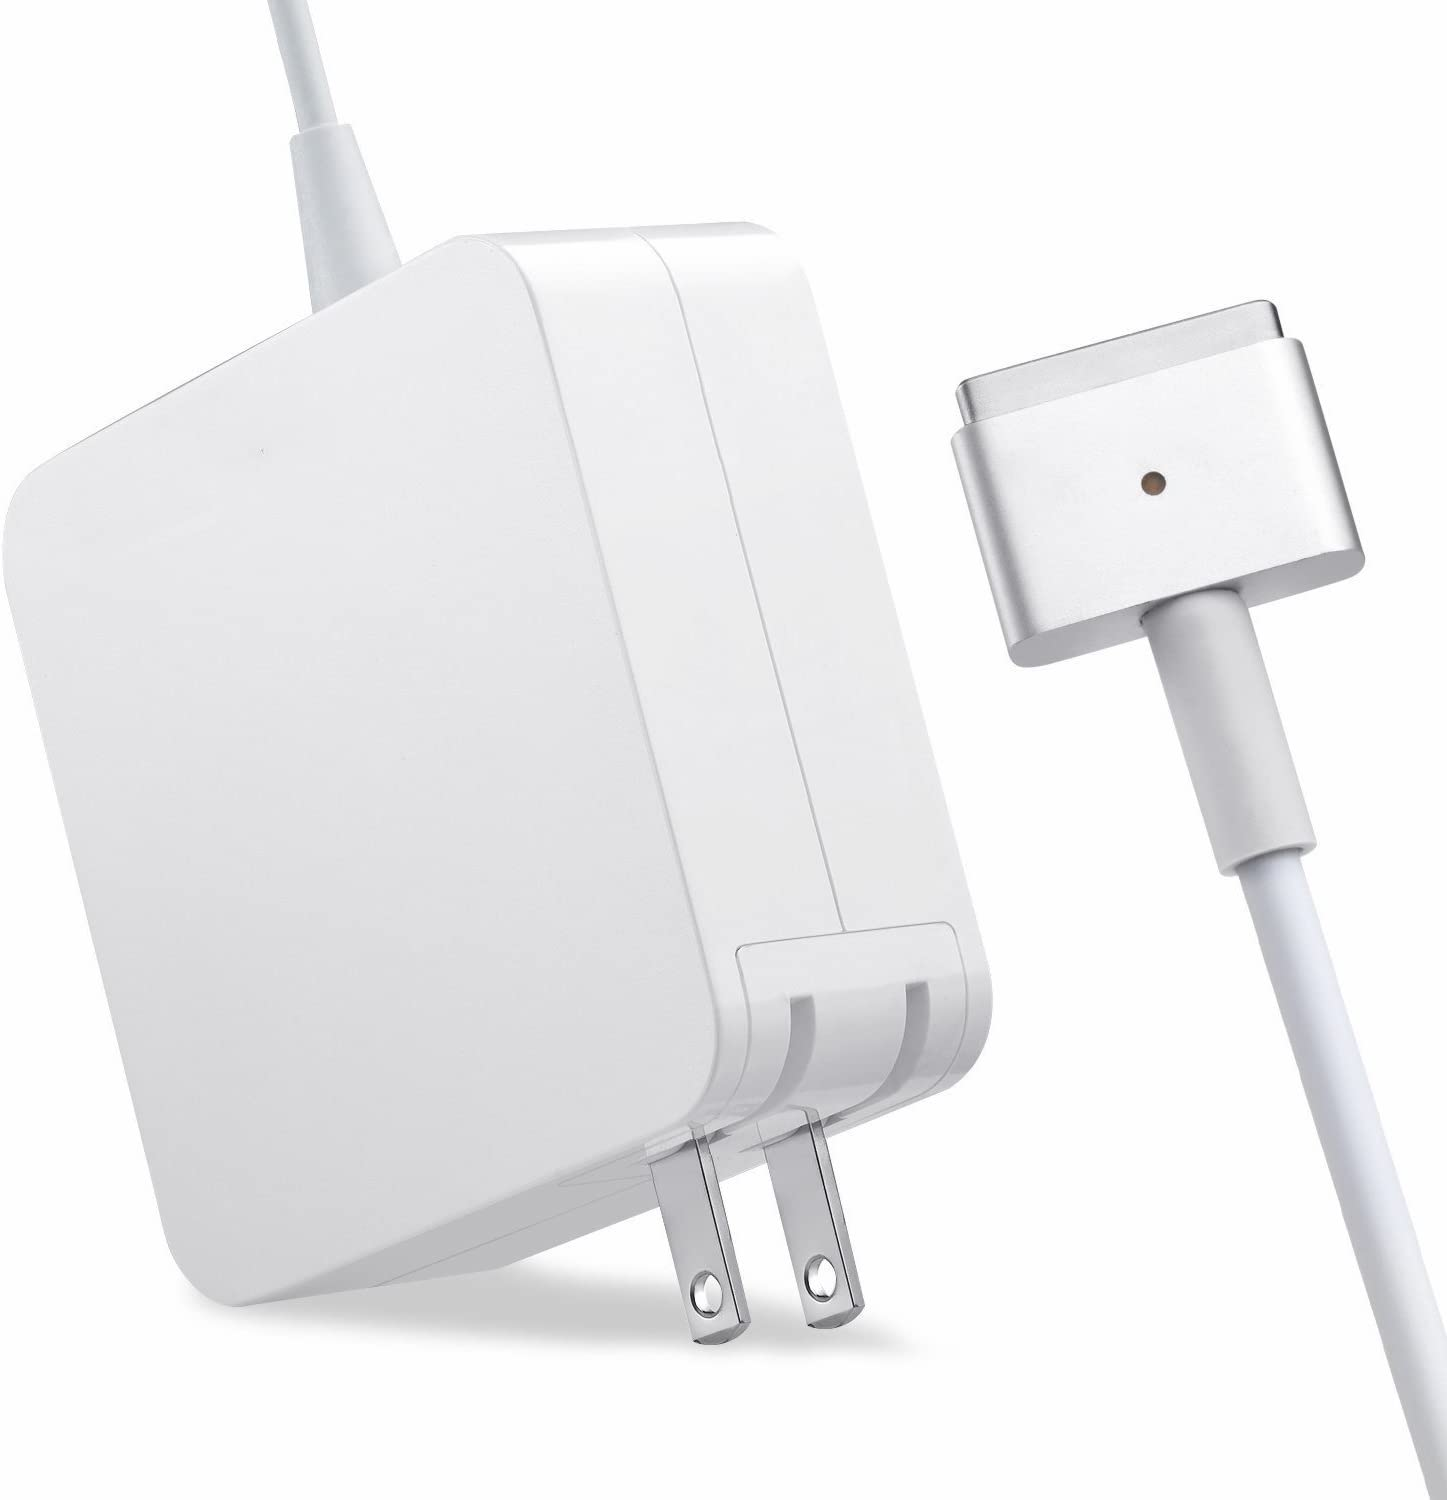 Mac Book pro Charger, AC 85w Magsafe 2 Power Adapter for MacBook Pro 13-inch/15inch/17inch Inch Made After Mid 2012